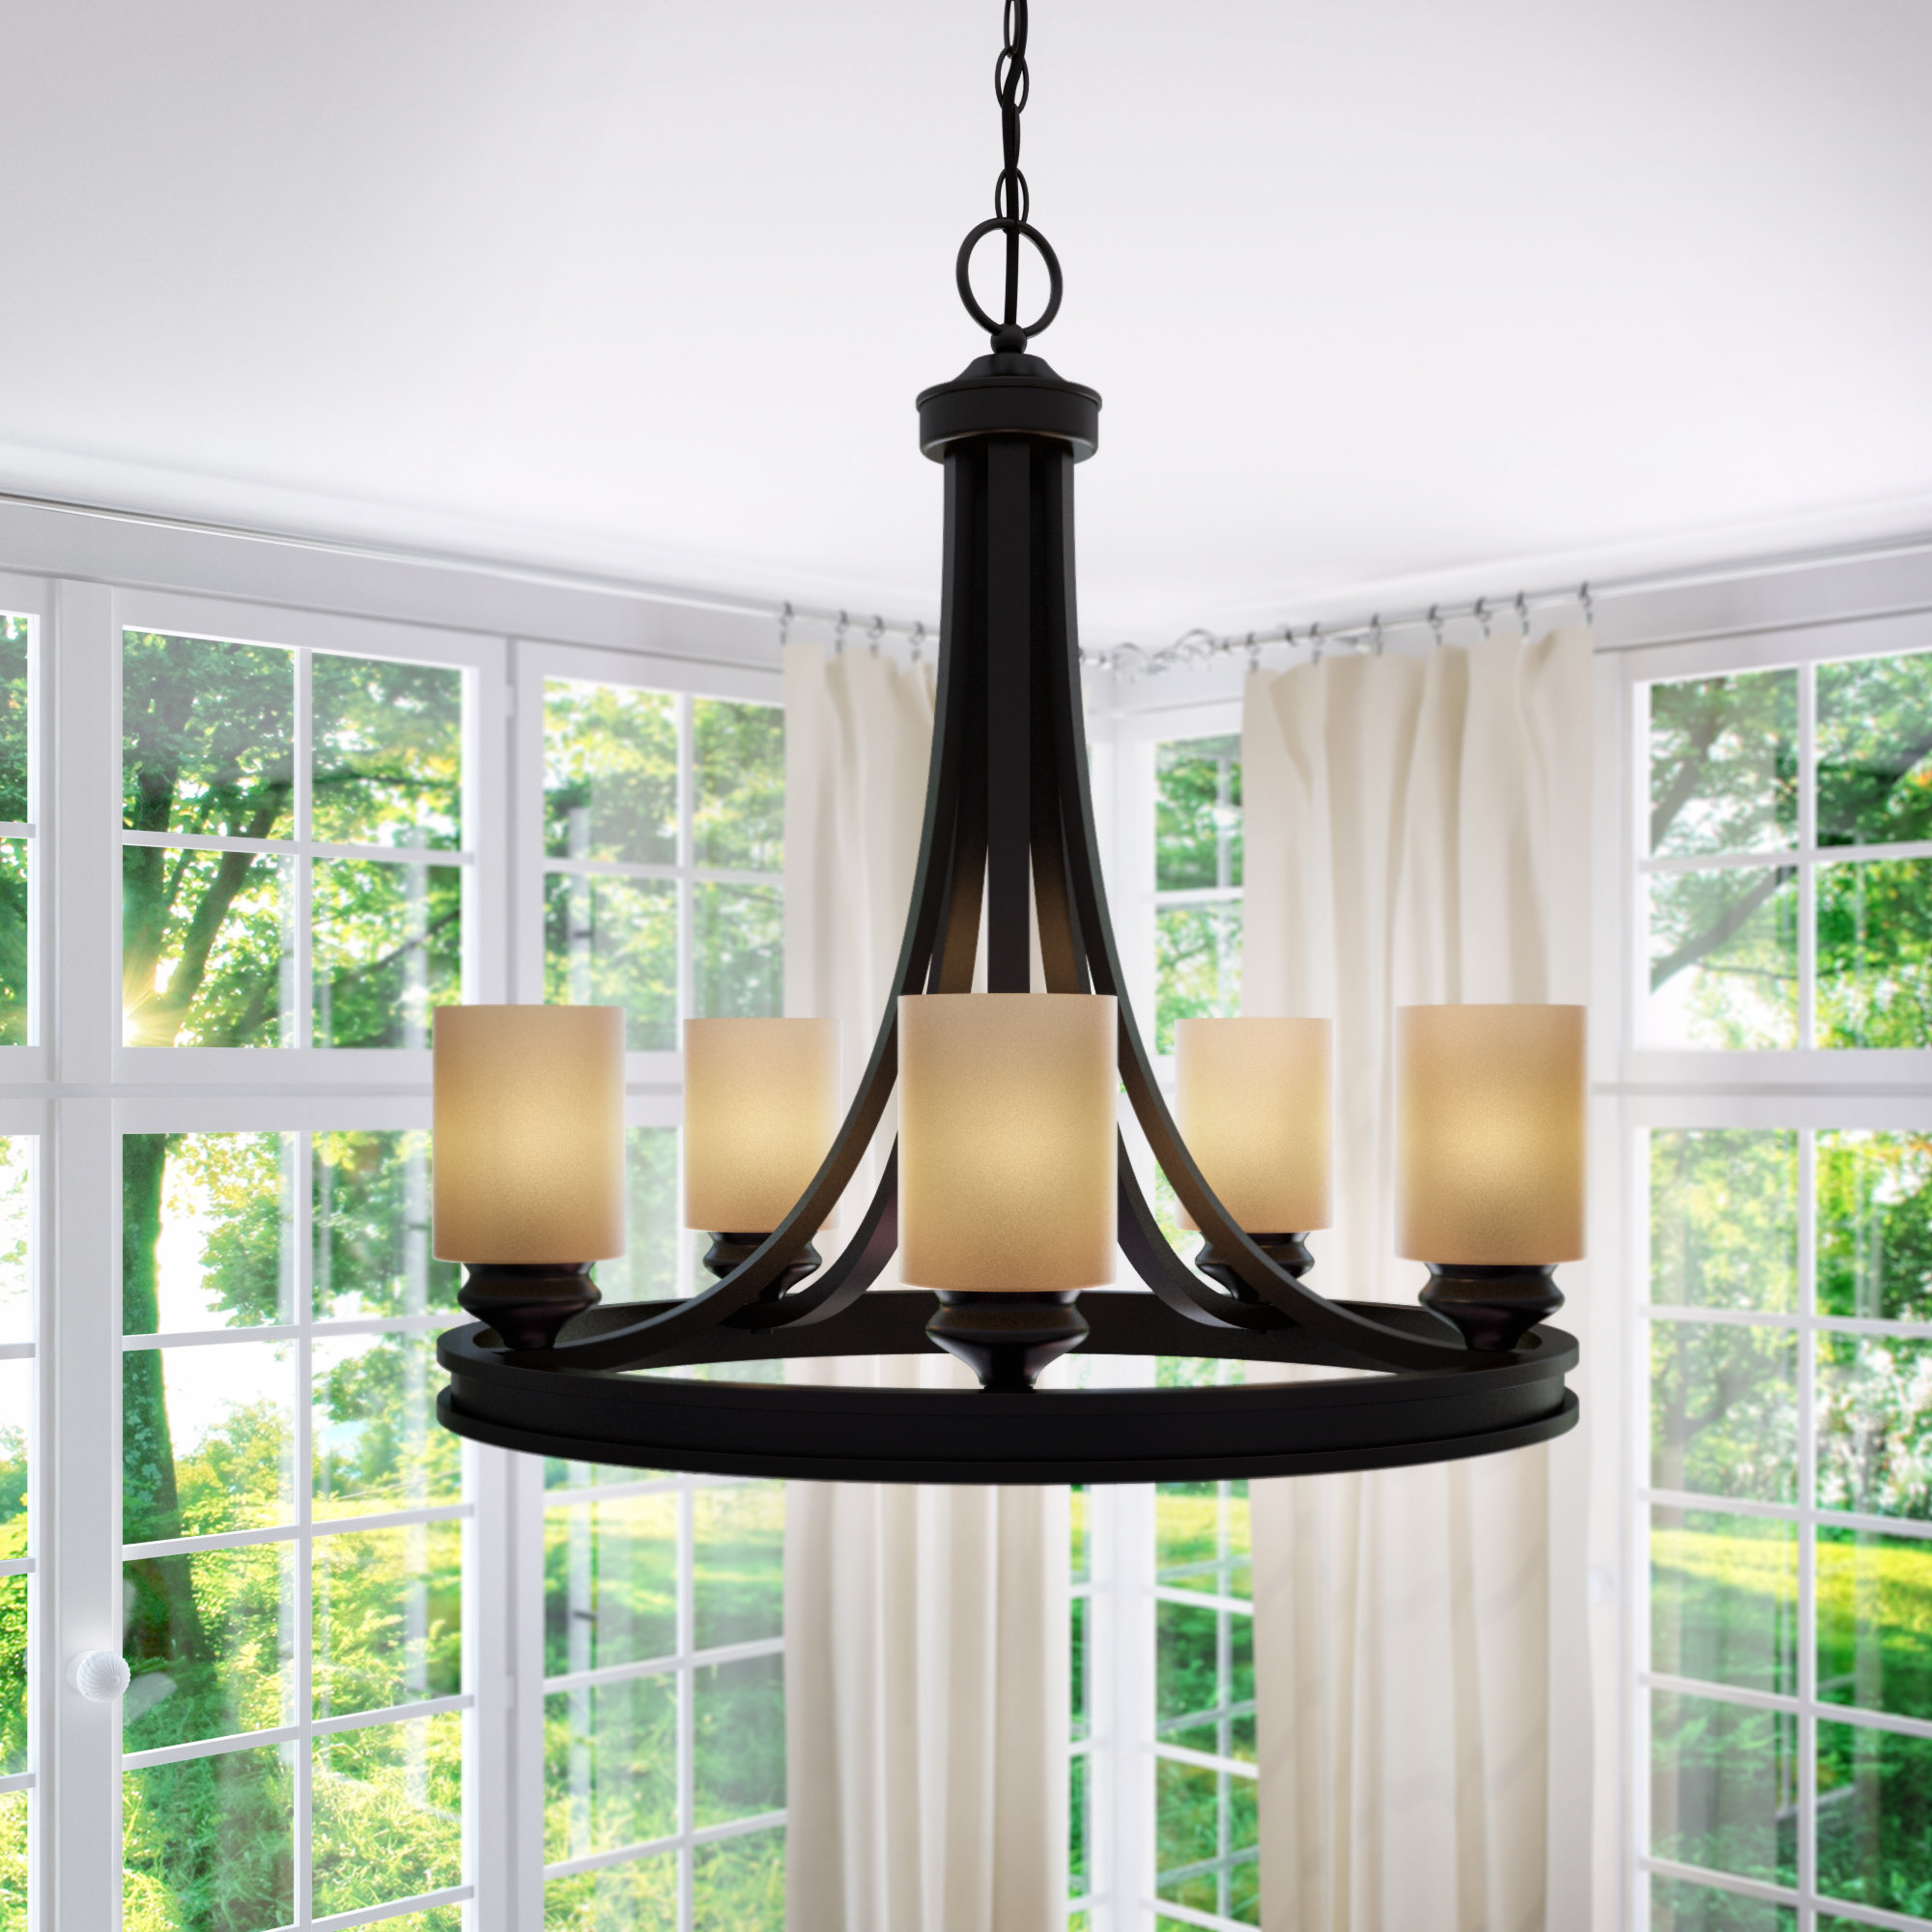 Swinford 5 Light Wagon Wheel Chandelier Pertaining To Crofoot 5 Light Shaded Chandeliers (View 24 of 30)